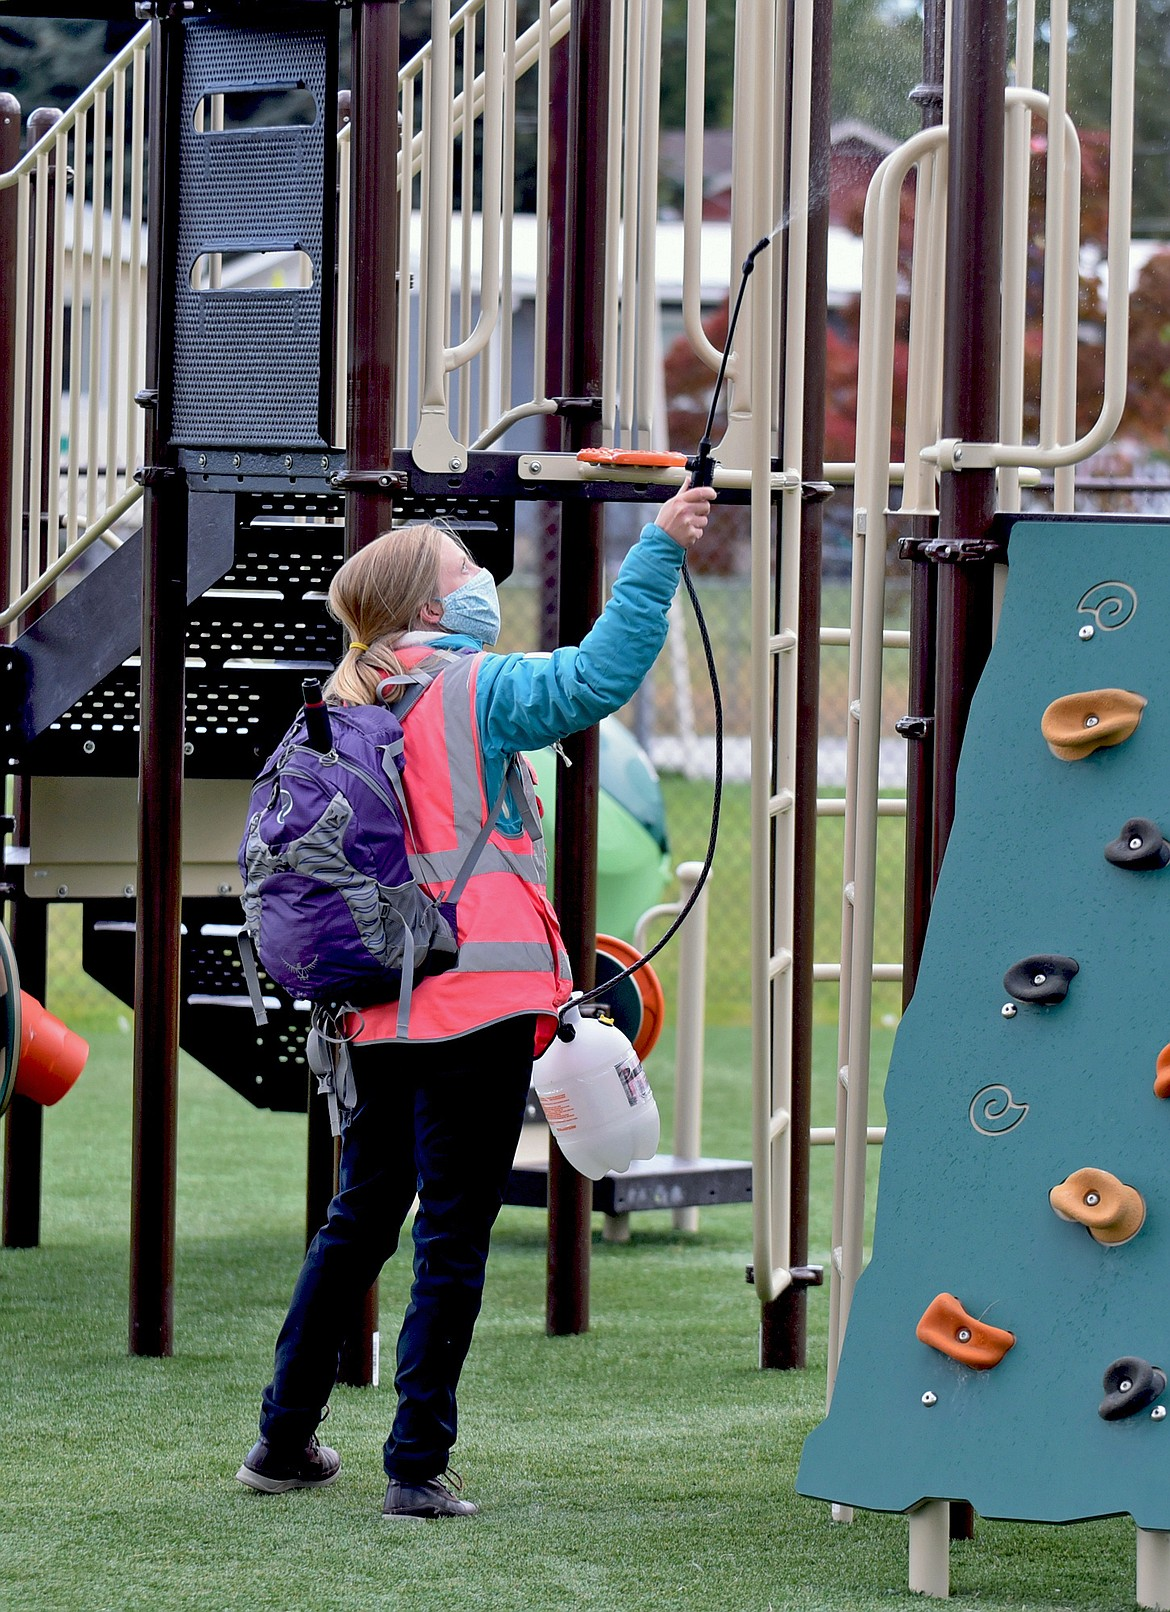 Playground supervisor Rebecca McQuary uses industrial sanitizer to clean the playground equipment between recess breaks at Muldown Elementary School. (Whitney England/Whitefish Pilot)